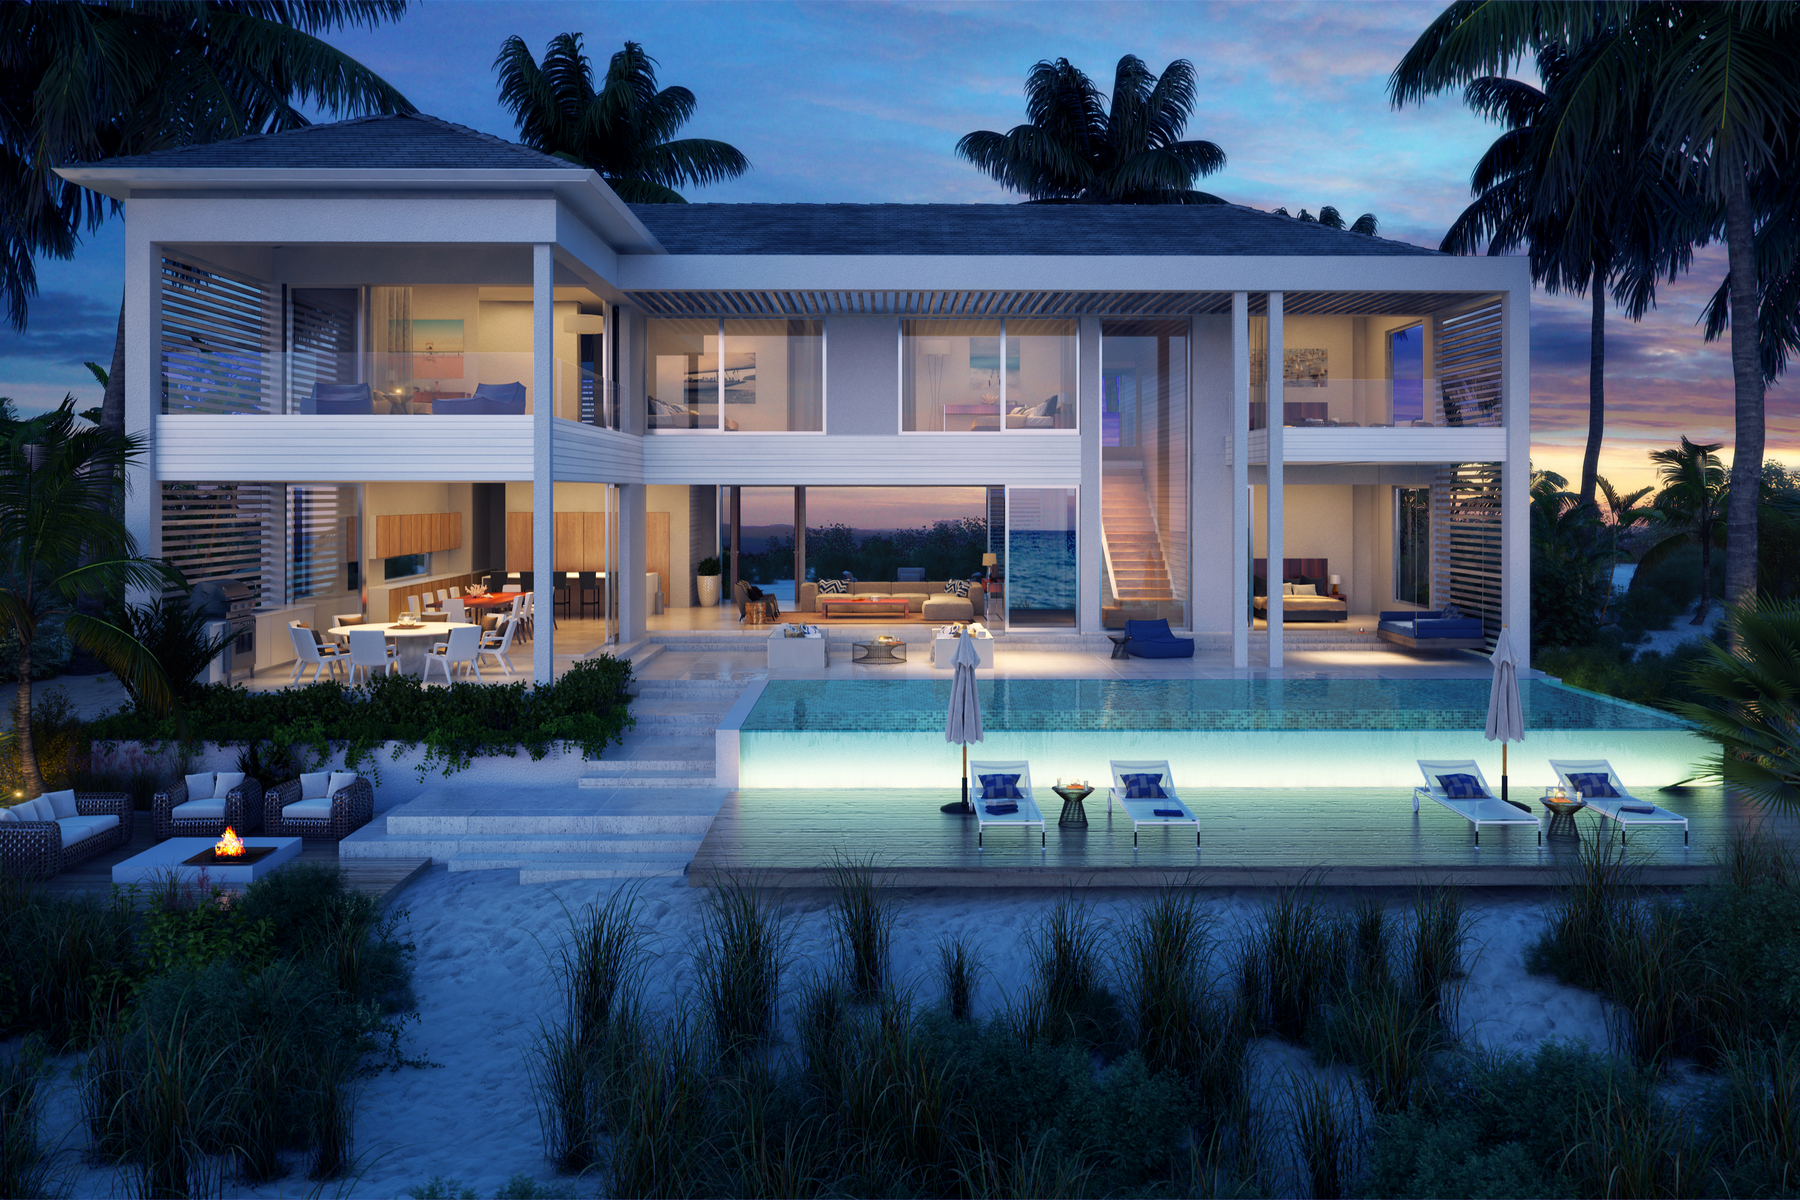 Single Family Home for Sale at Beach Enclave Grace Bay - Design B Beach Enclave Grace Bay, Lot 9 - Design B Grace Bay, Providenciales TKCA 1ZZ Turks And Caicos Islands